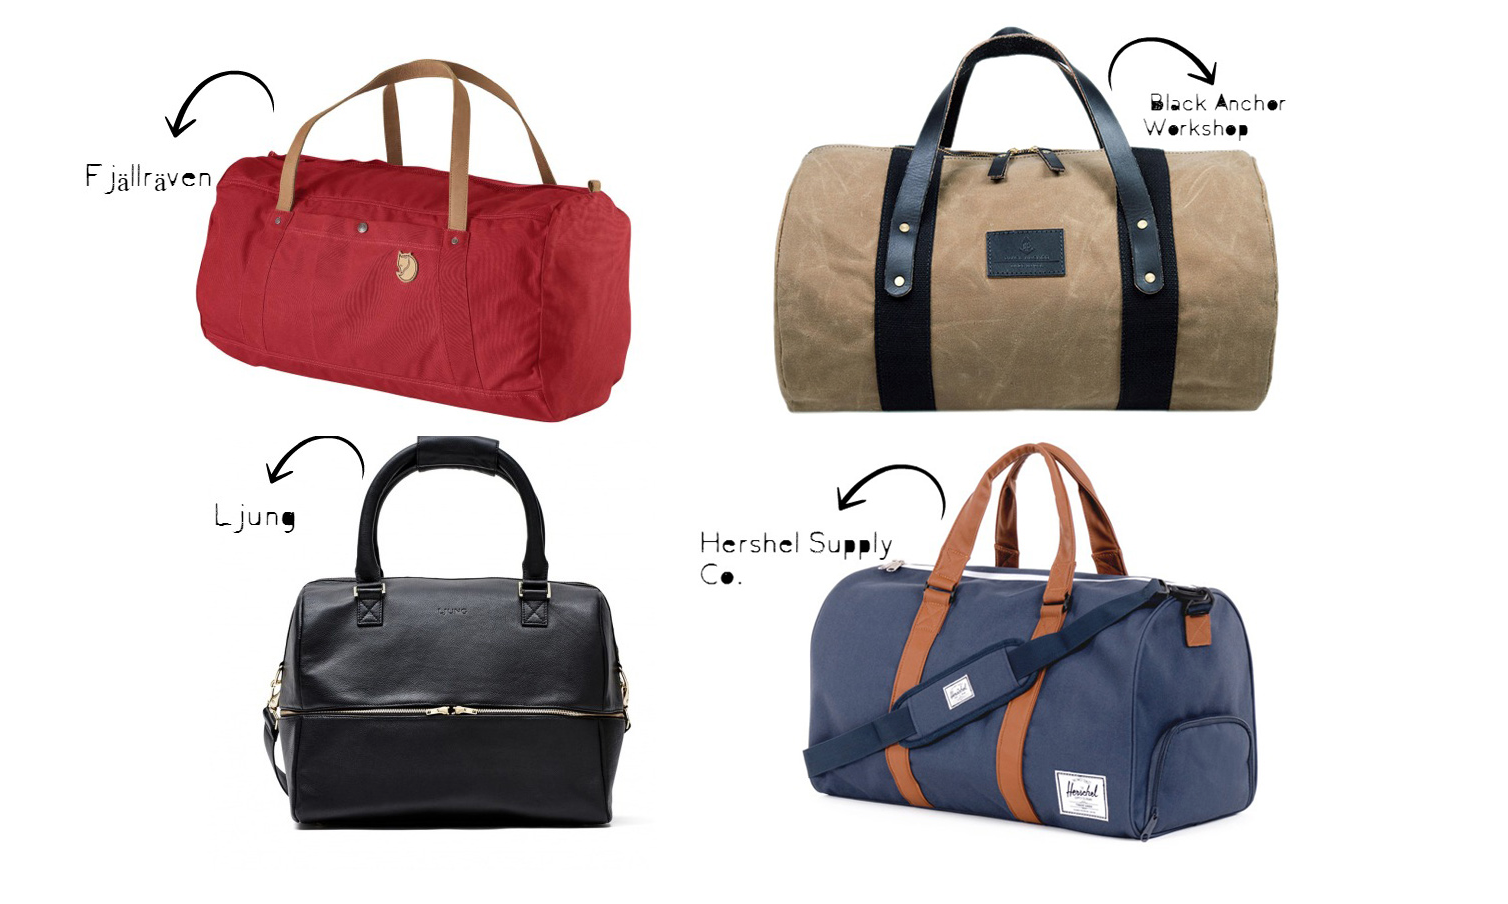 weekendbag voor mannen - Daily Cappuccino - Lifestyle Blog